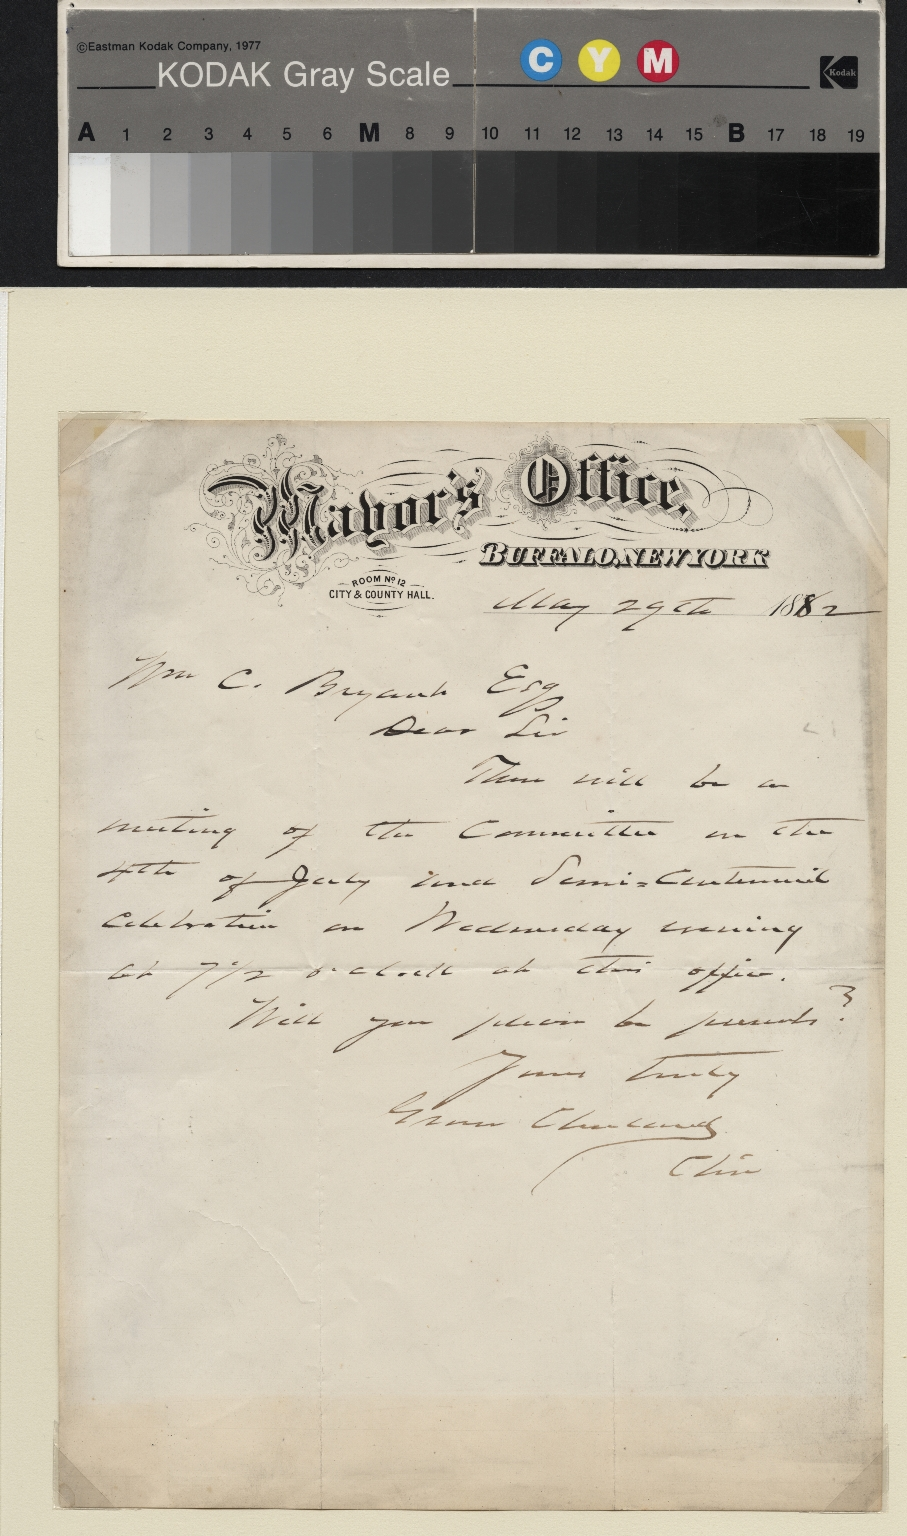 Grover Cleveland letter to C. Bryant